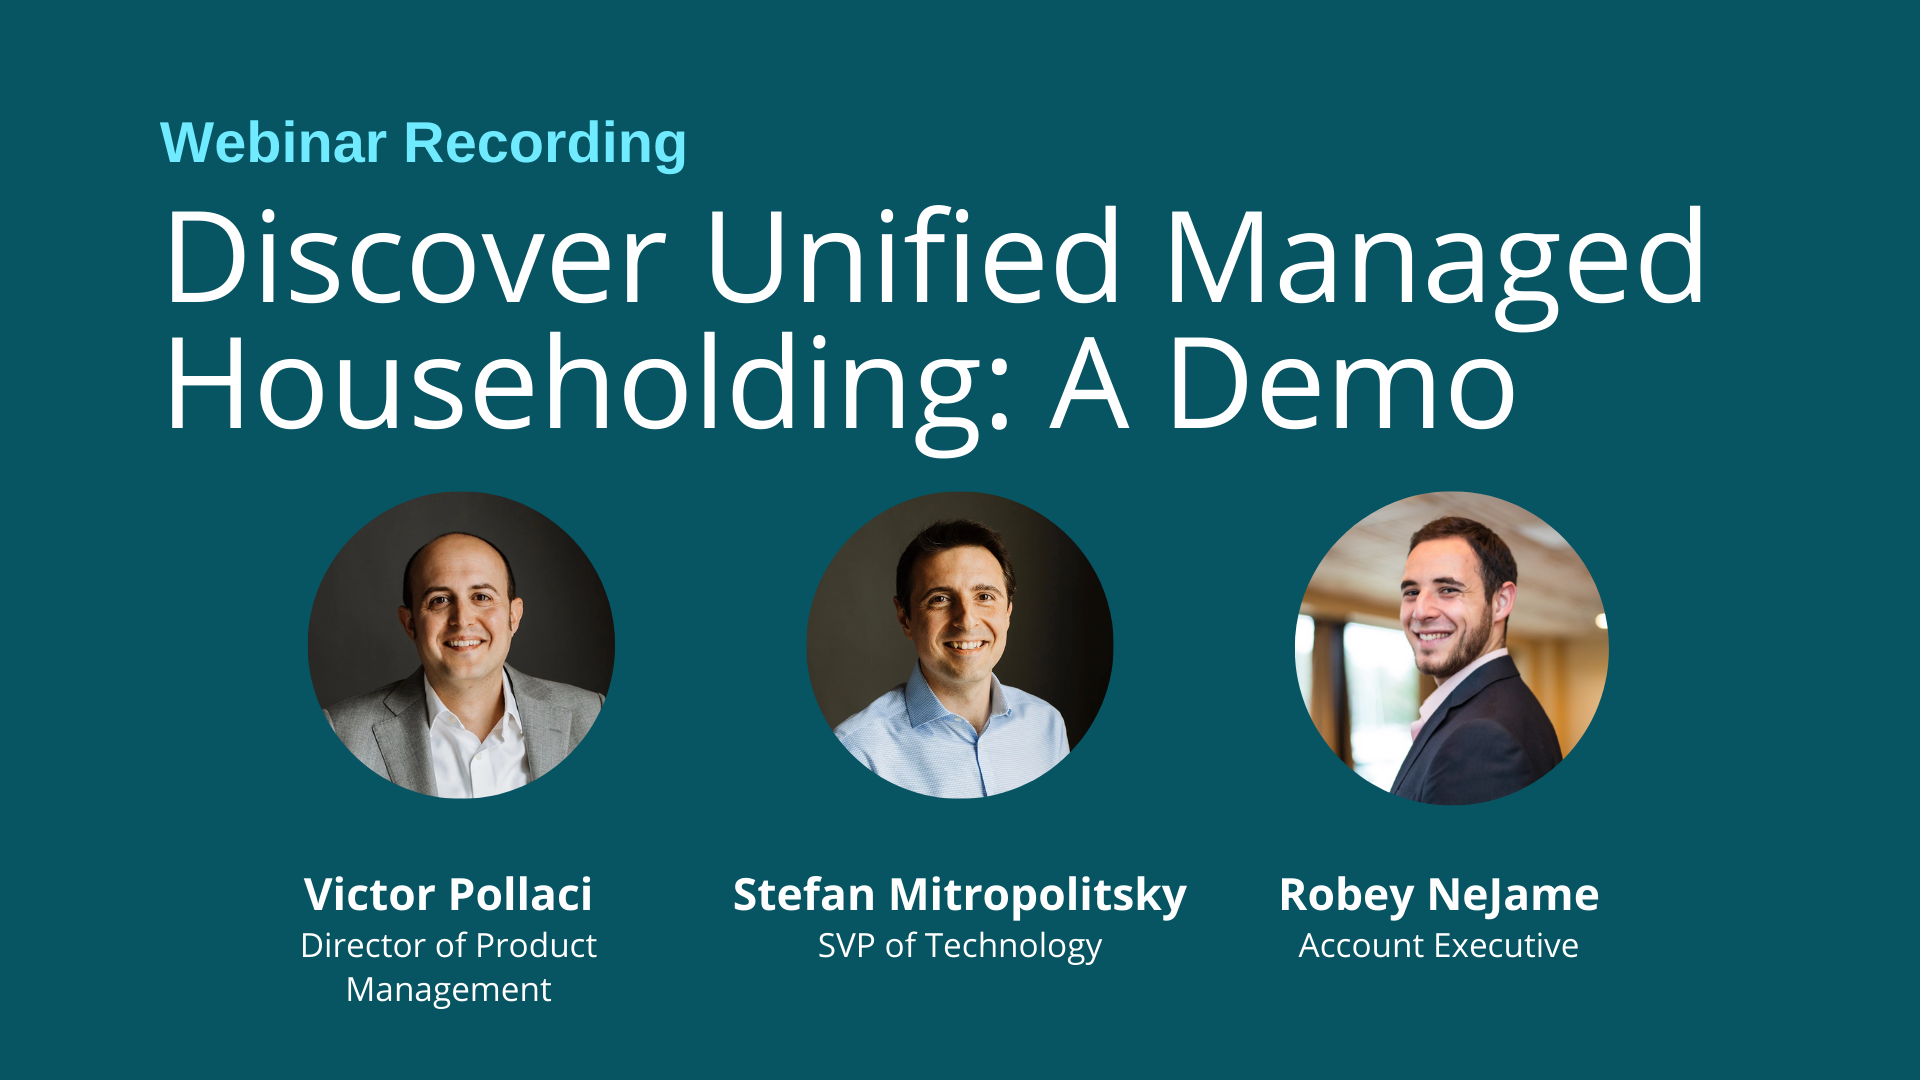 Video: Discovering Unified Managed Householding